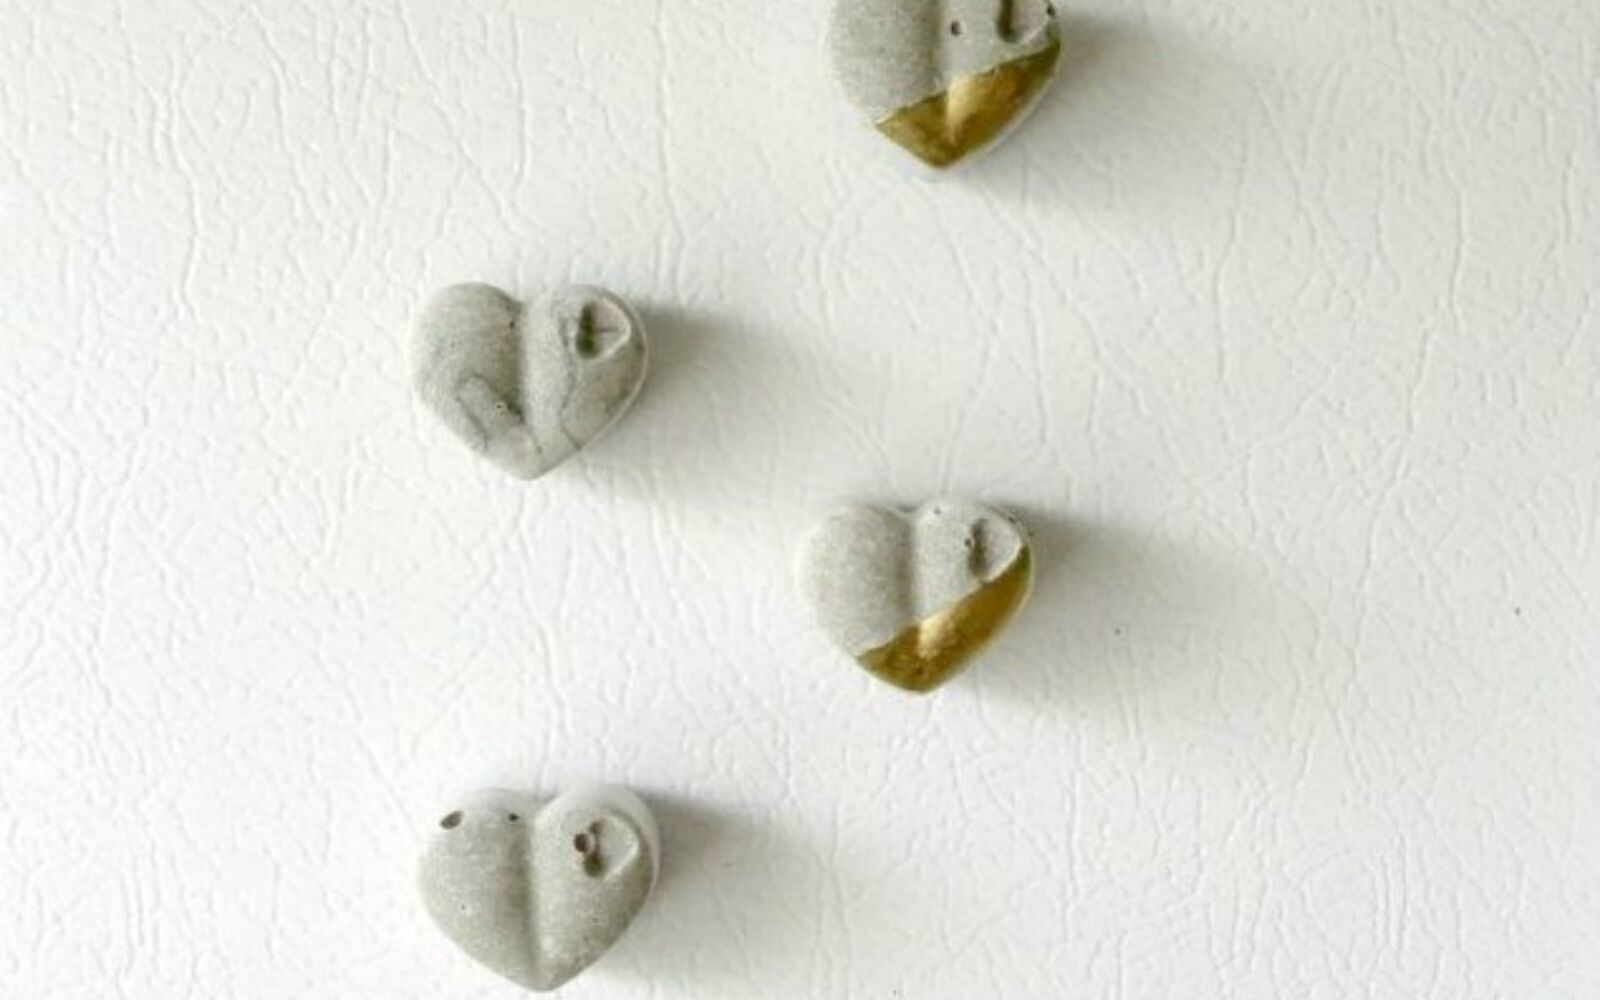 s 14 stunning ways to add cement to your home decor, concrete masonry, home decor, Mix it into heart shaped magnets